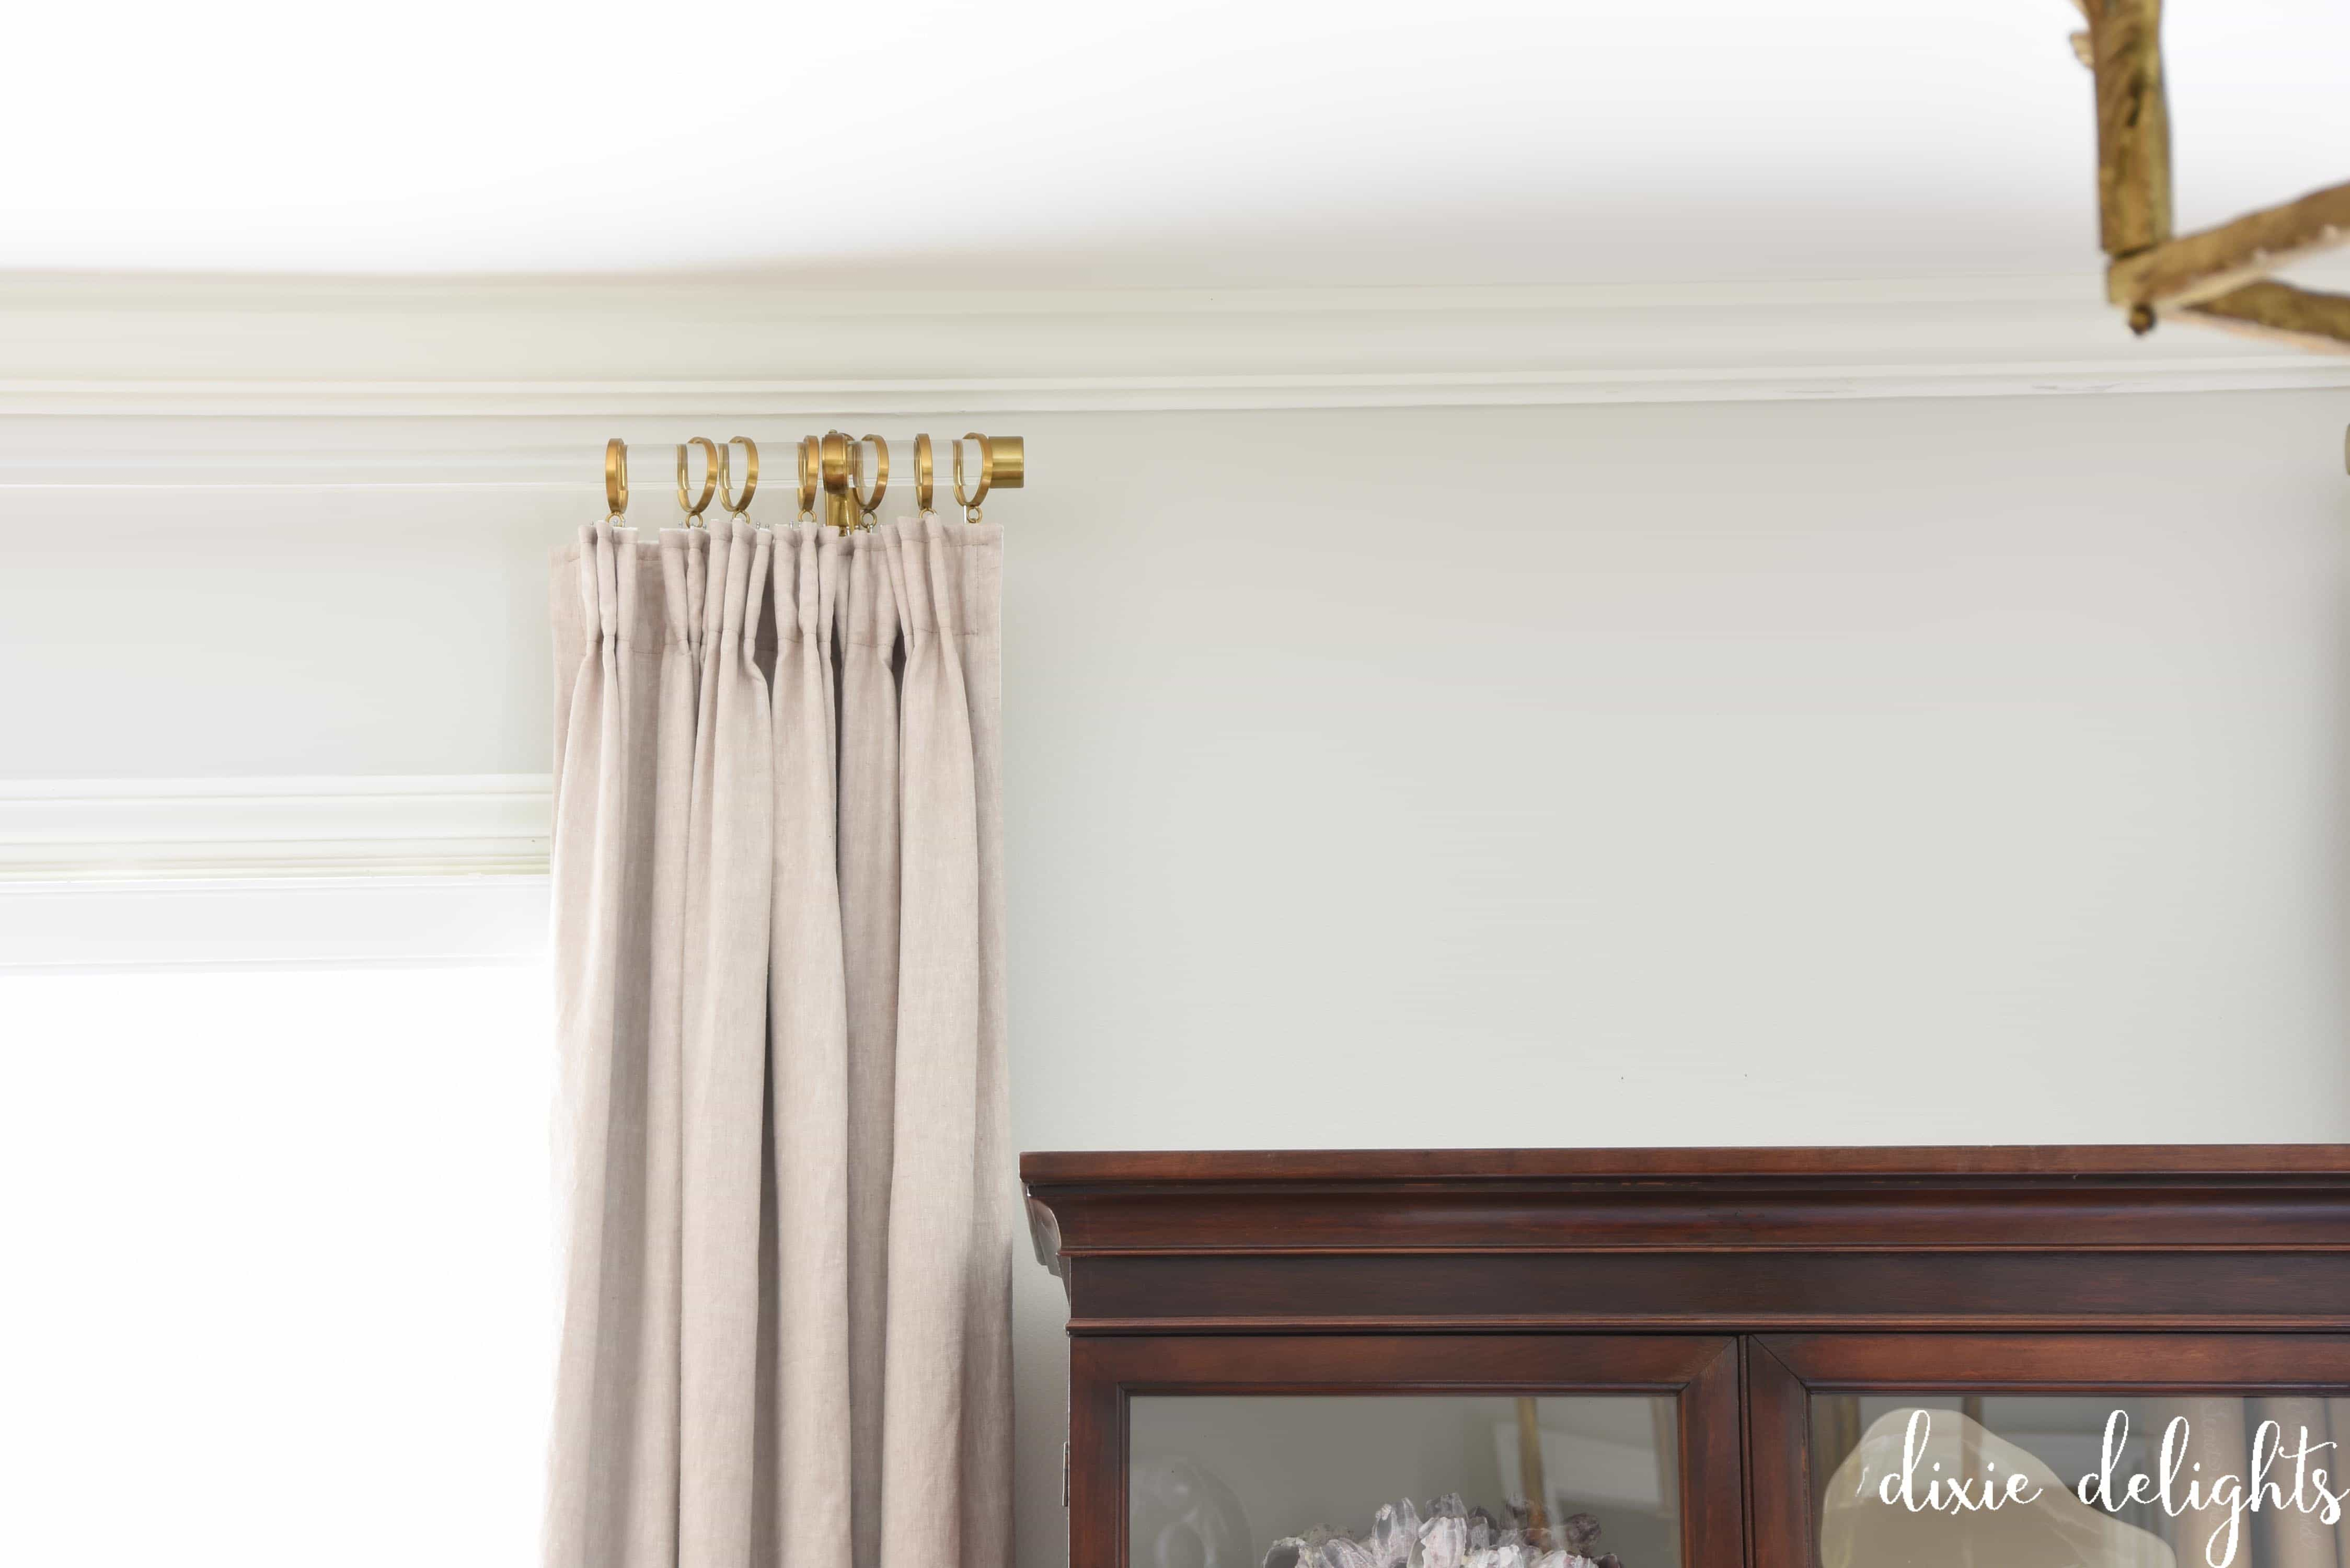 Acrylic curtain rod - When Honey Installed The New Rods He Moved Them Up Just Under The Crown Molding Between That And The Clear Rod It Really Improved The Look Of The Ceiling